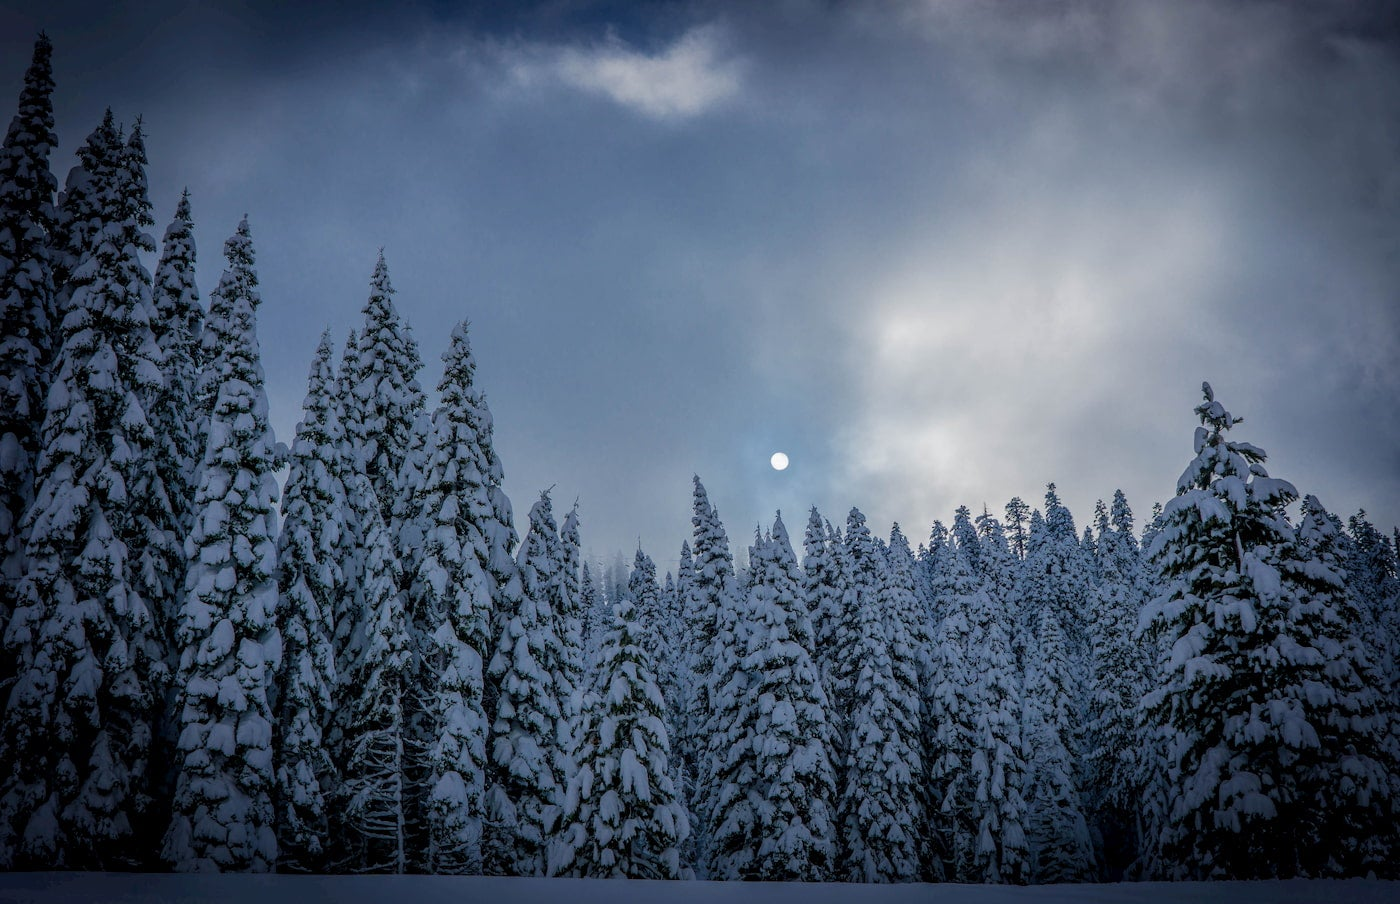 Snow covered trees with a clear full moon above them.